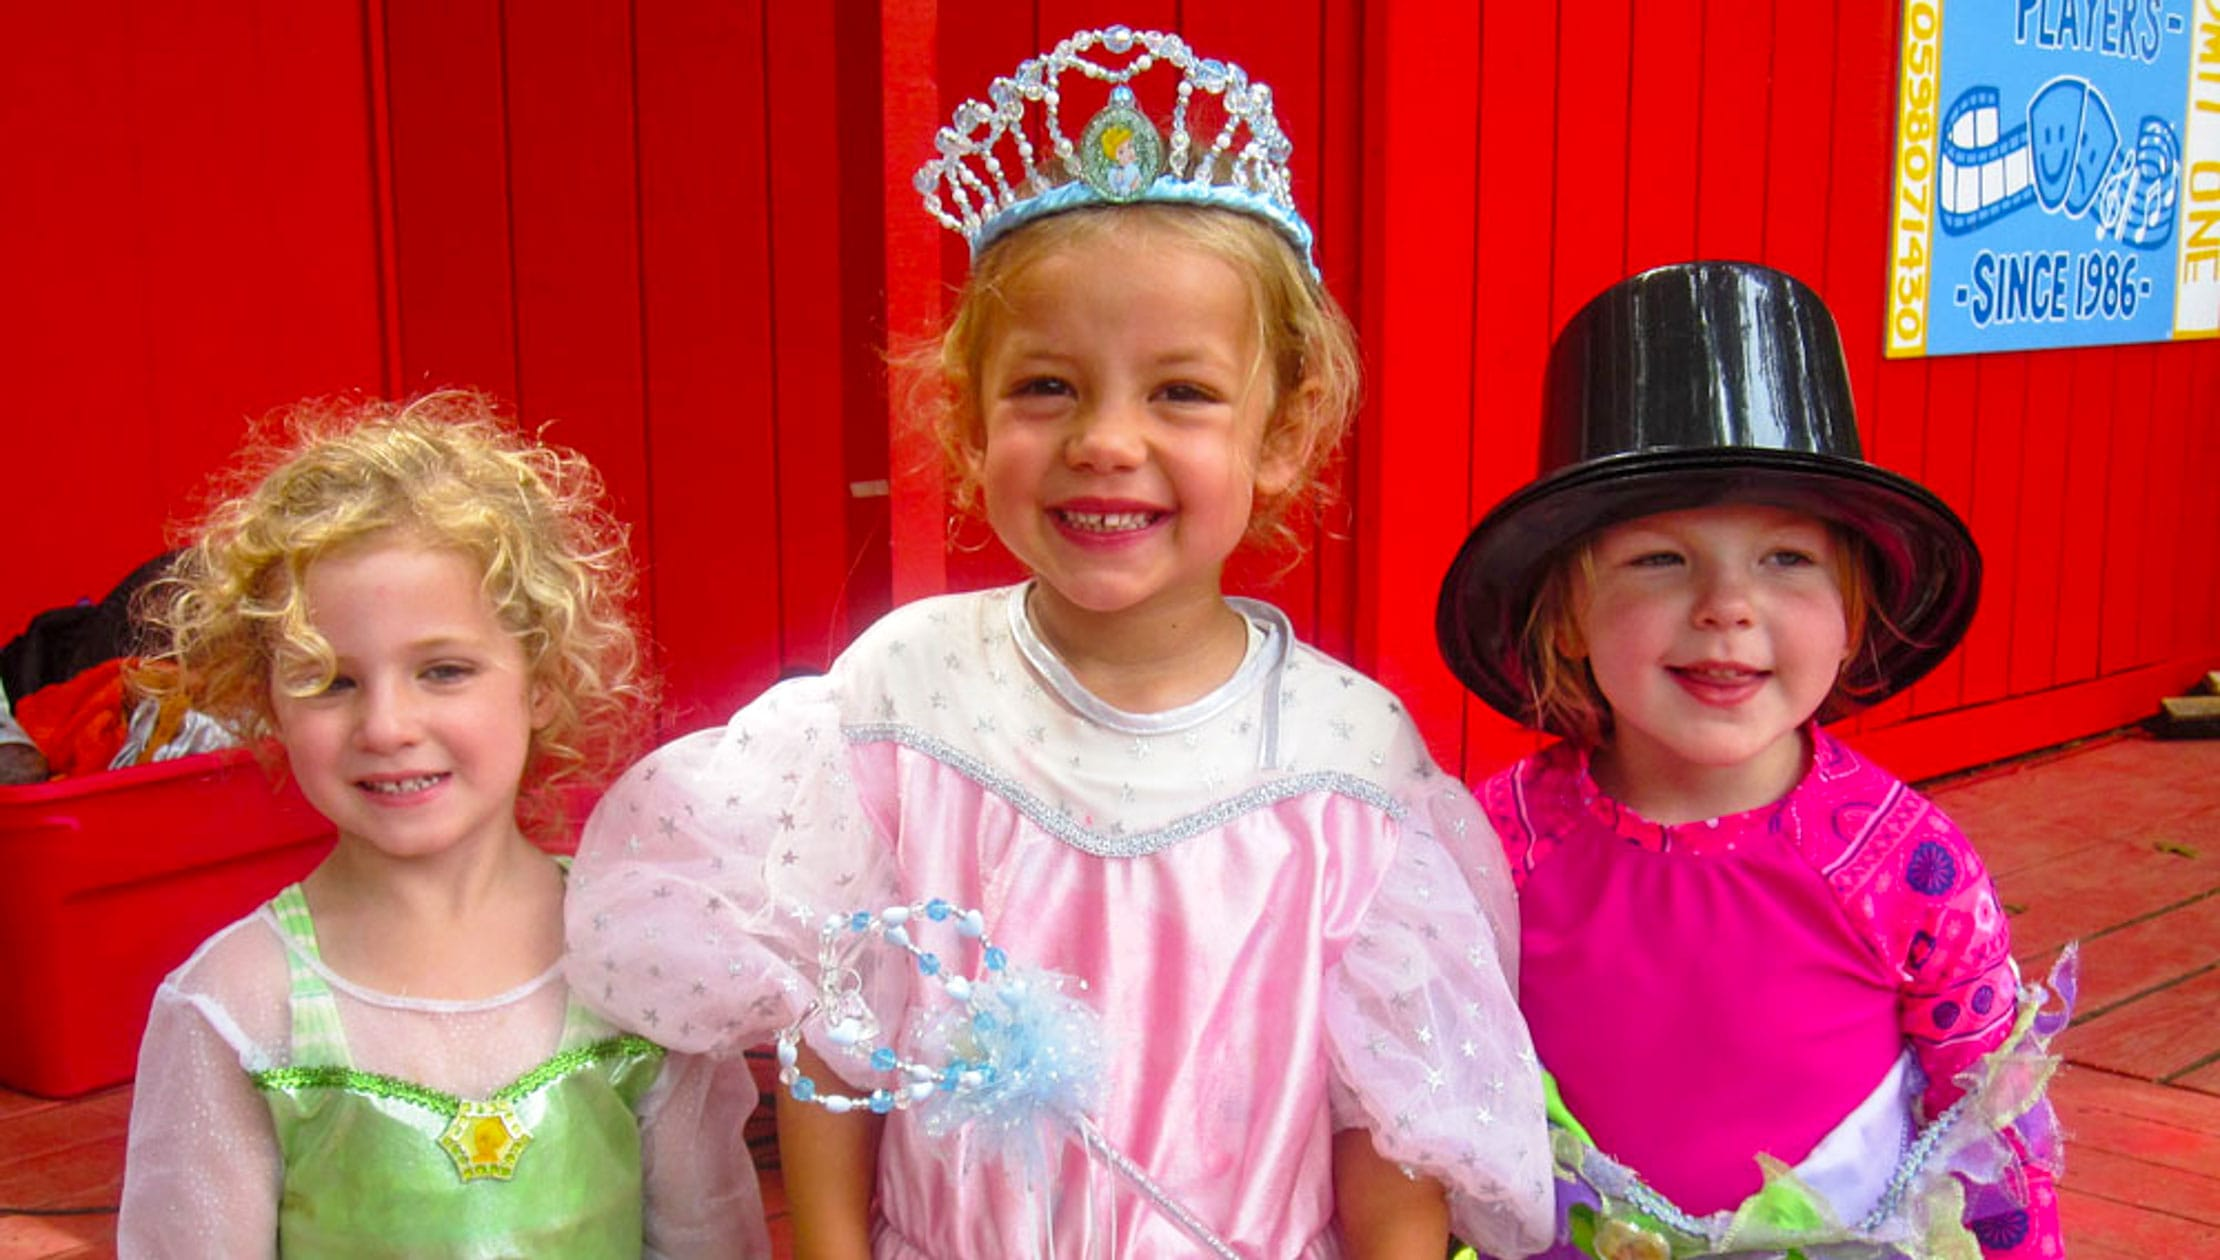 Kids in costume during drama activity